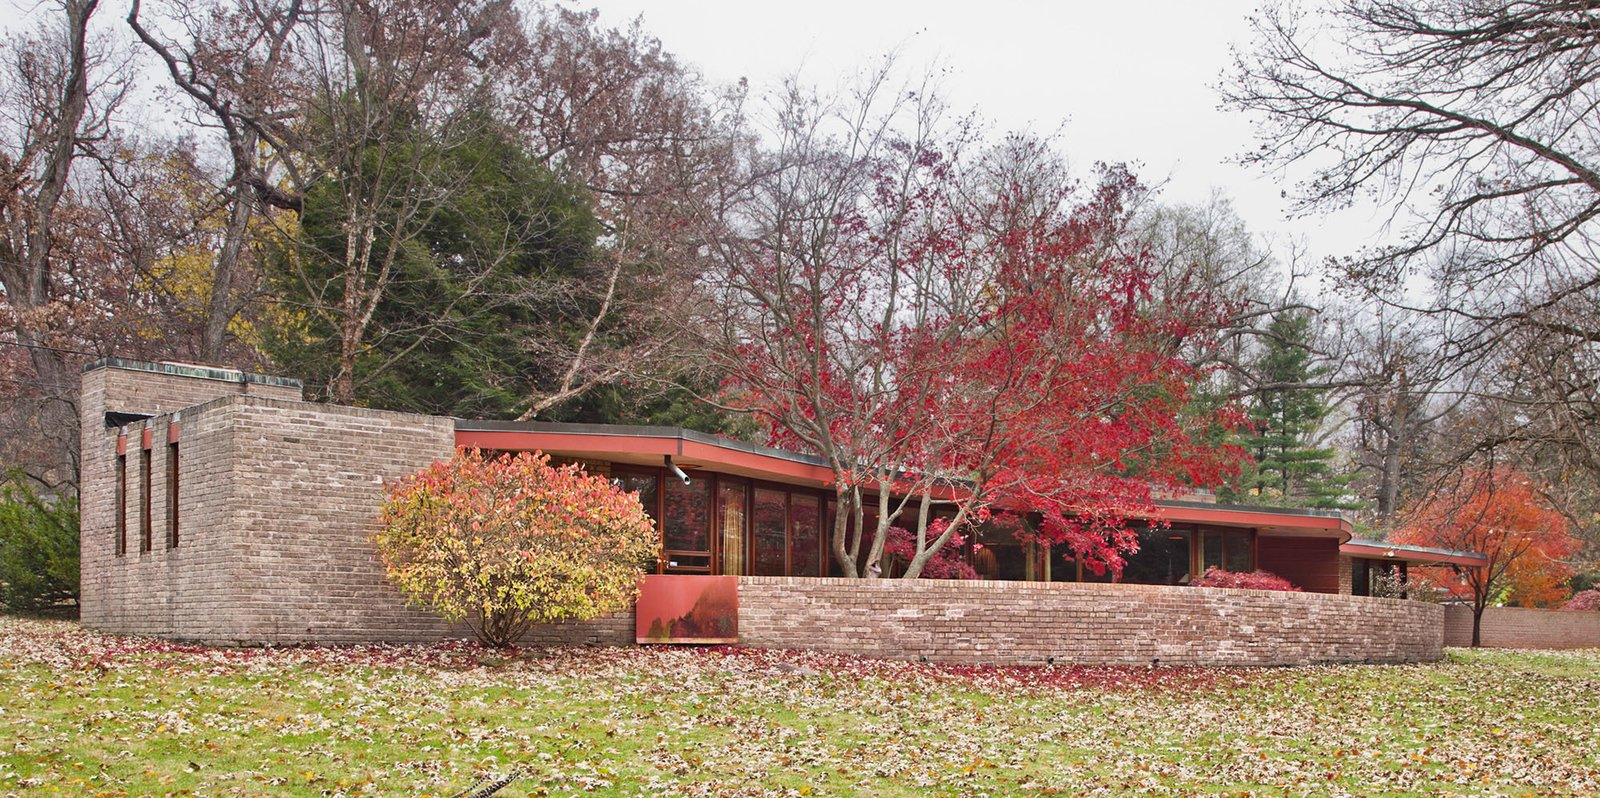 The Laurent House opens to the public for the first time on June 7 and will be open the first and last weekend of each month. Admission is $15. Photo courtesy of Wright Auction House.  Modern Master: Frank Lloyd Wright from Accessible Frank Lloyd Wright House in Illinois Is Reborn as a Museum